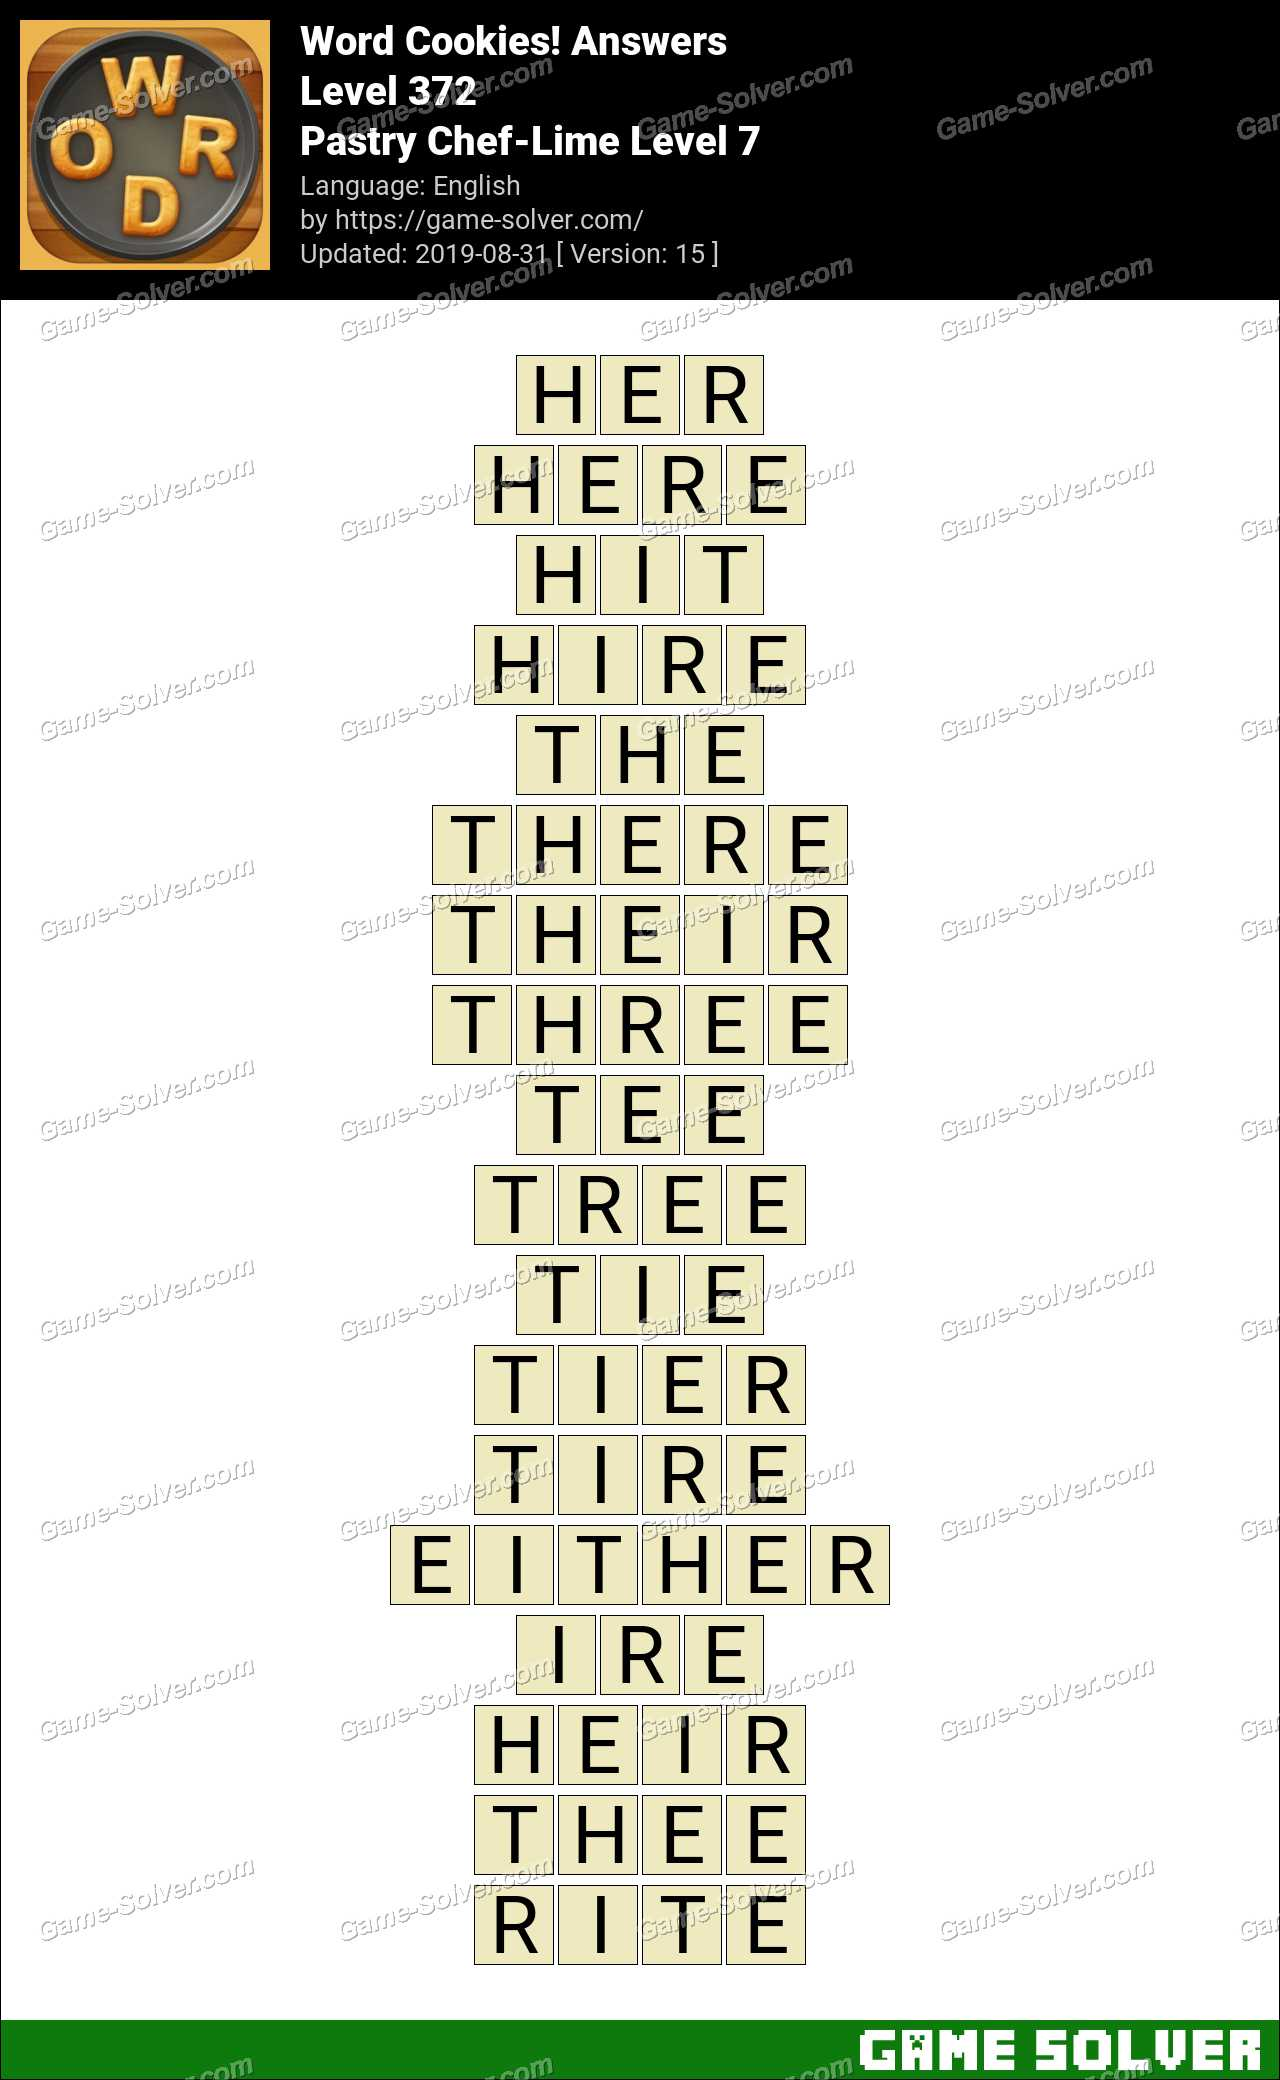 Word Cookies Pastry Chef-Lime Level 7 Answers